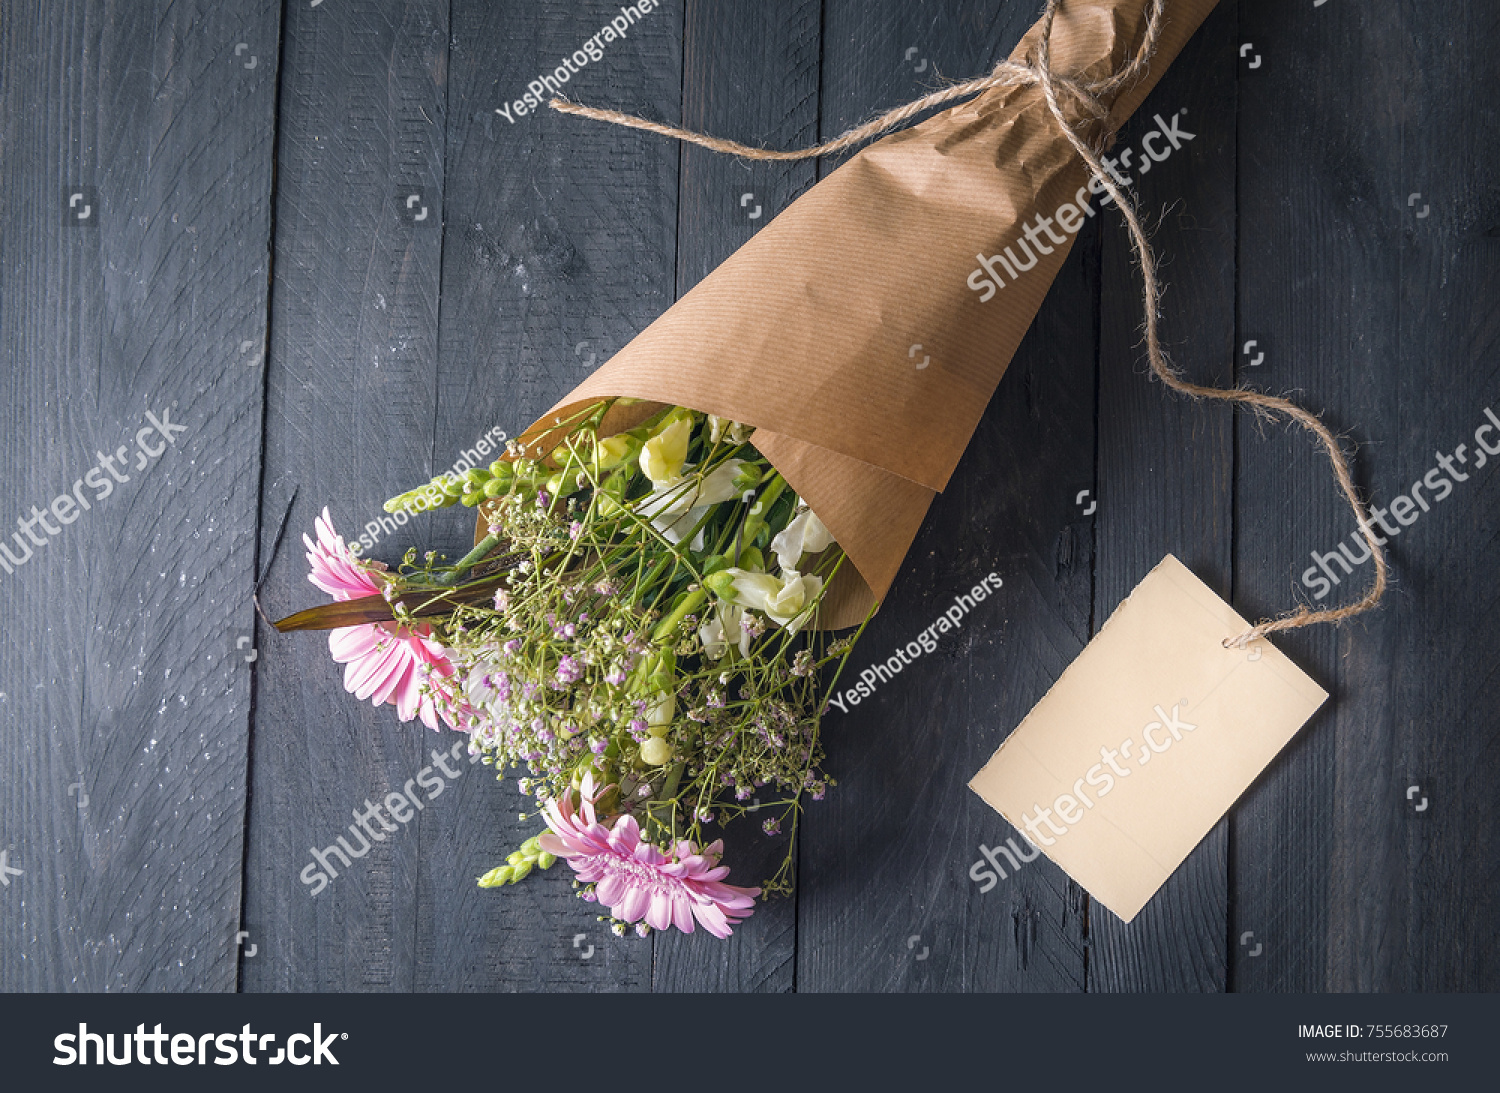 Gifting Theme Image Lovely Bouquet Flowers Stock Photo Royalty Free